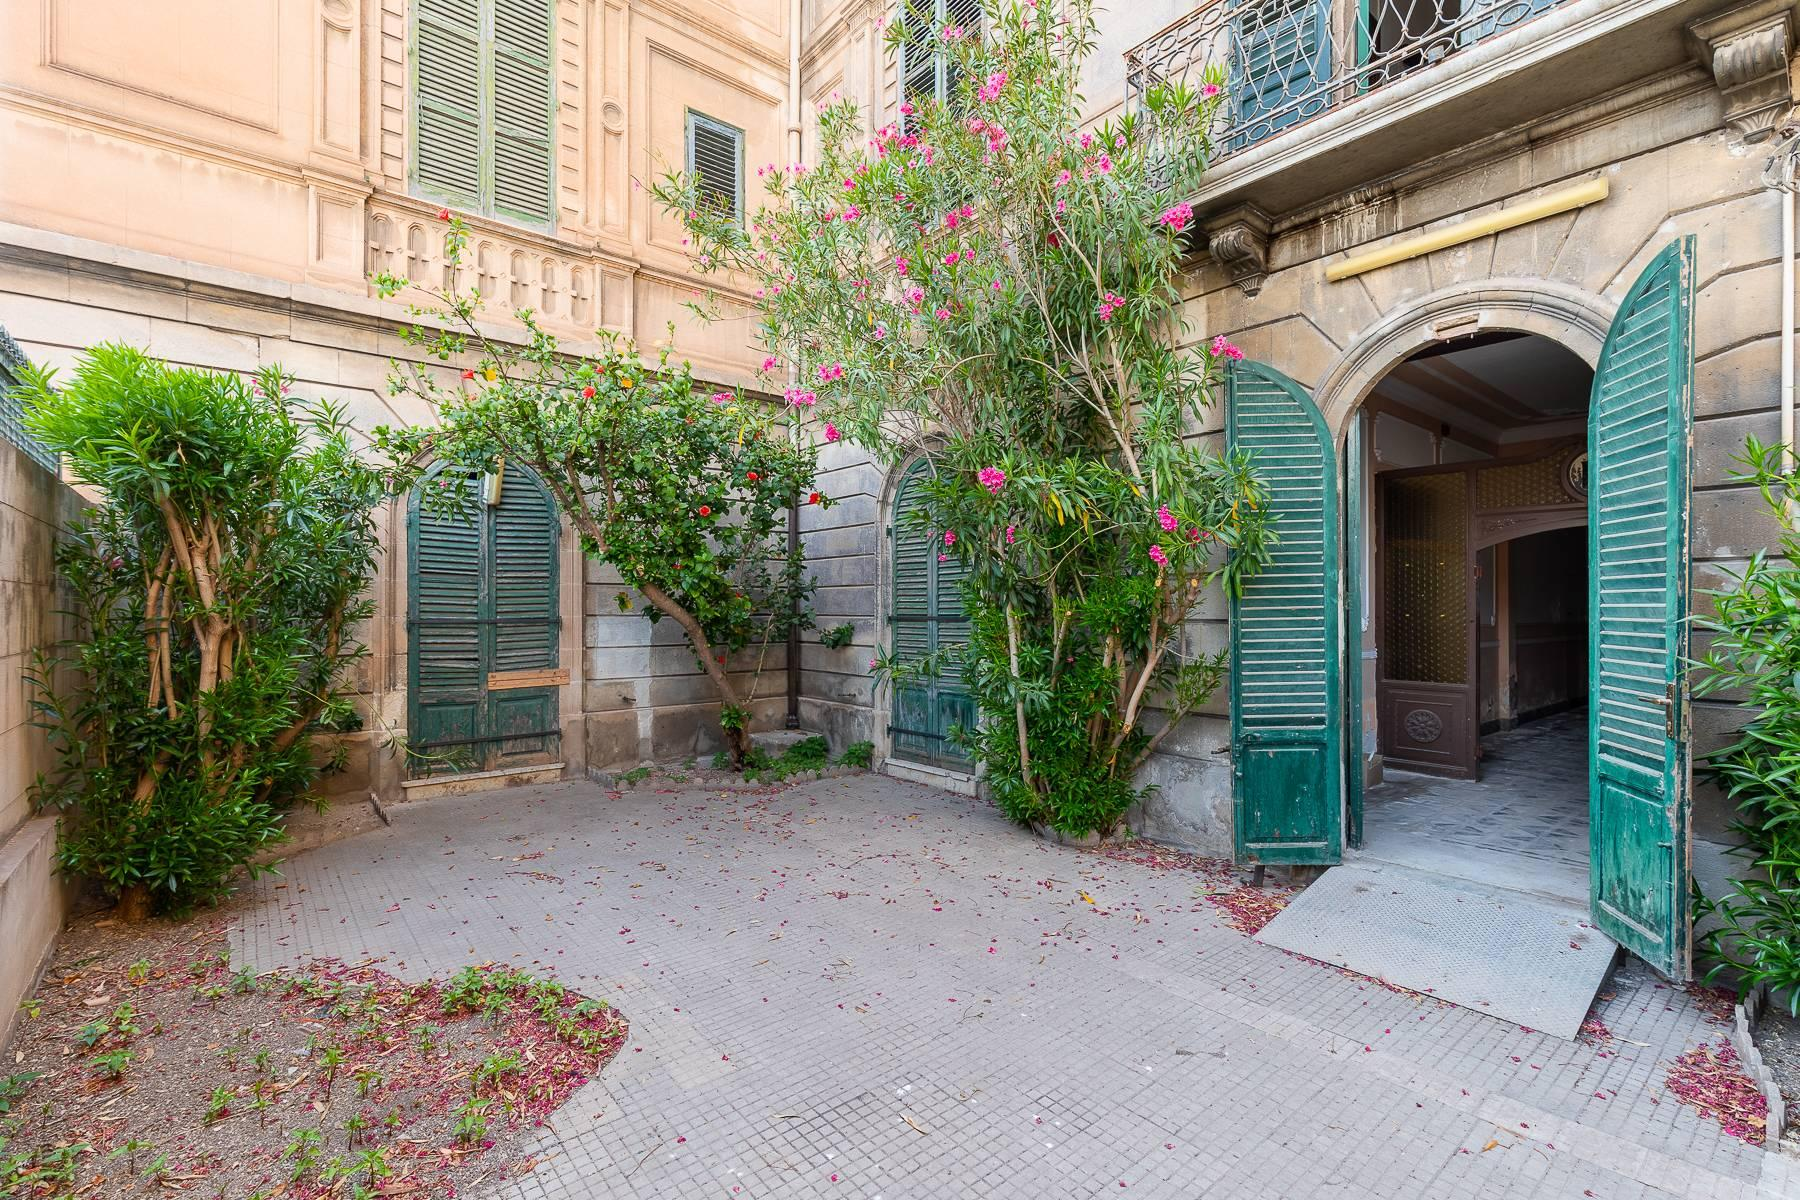 Liberty style building in the historical center of Trapani - 7